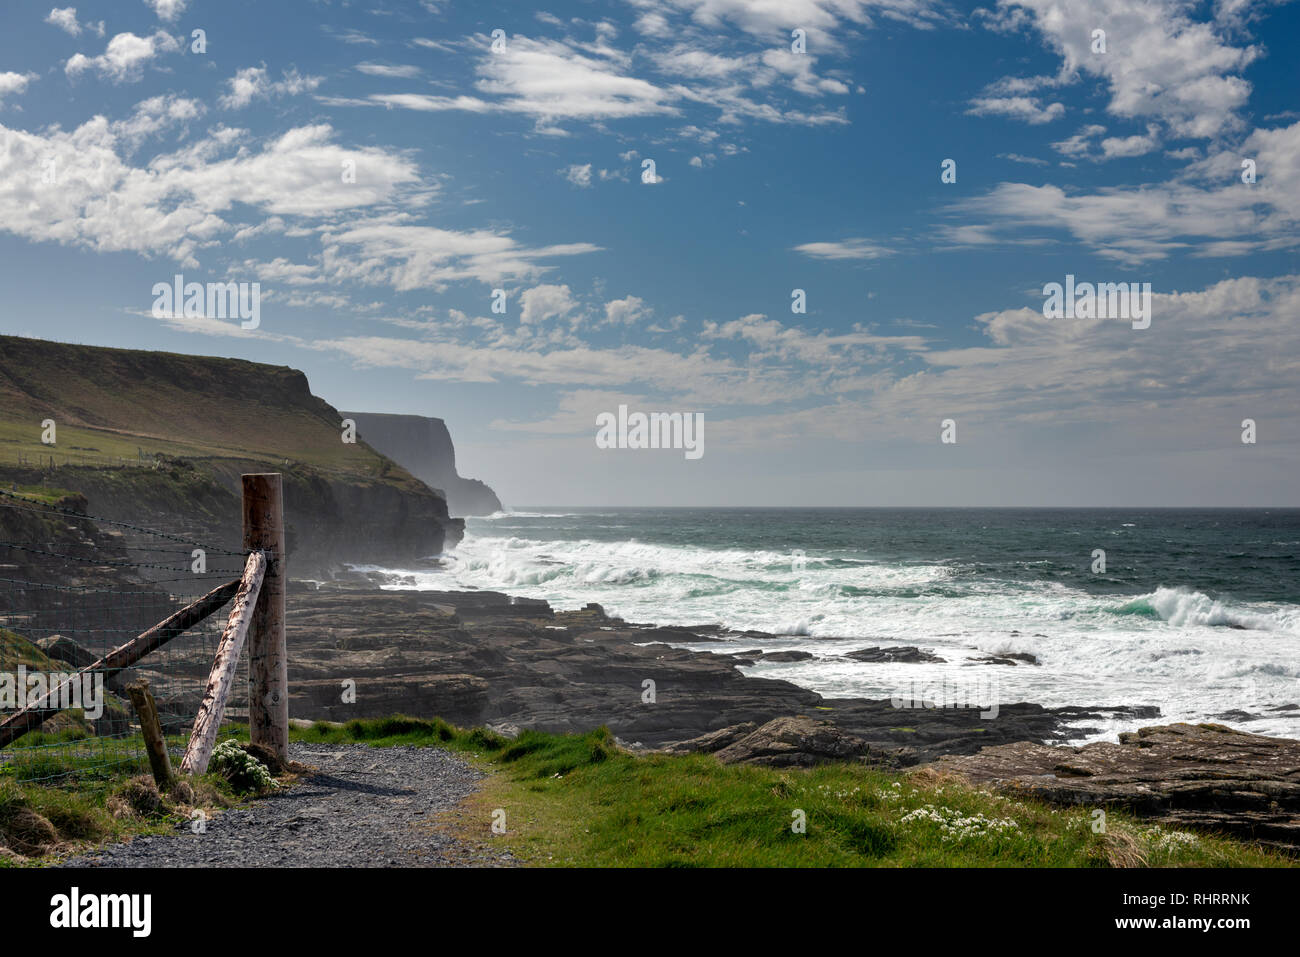 Cliffs of Moher coastal trail seascape. Footpath along the Atlantic Ocean west coast Ireland. Dramatic scenic view on the Wild Atlantic Way. - Stock Image